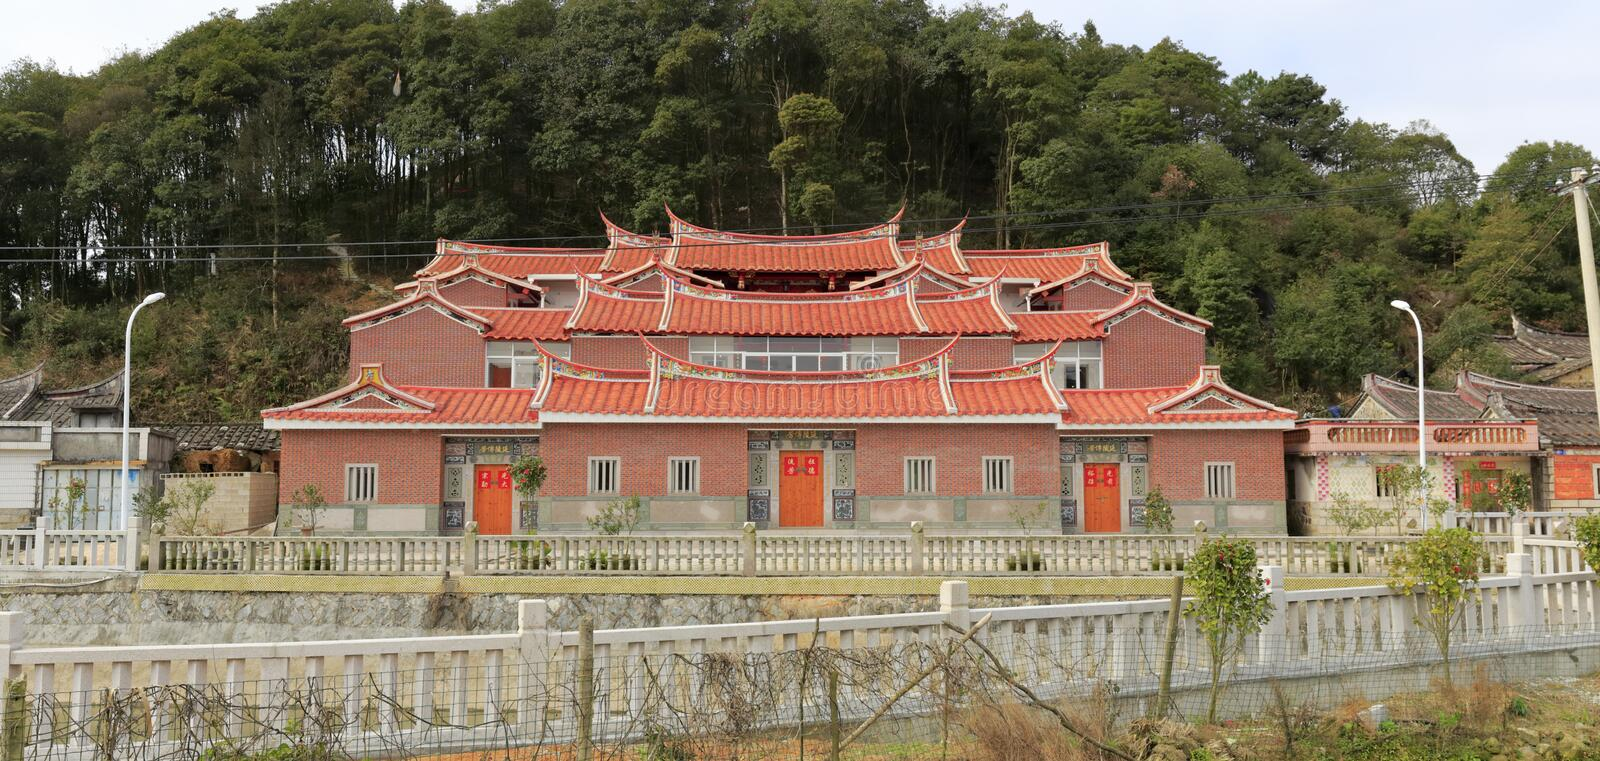 Superior Download South Fujian Red Brick House Editorial Photo   Image Of South,  Northern: 76282141